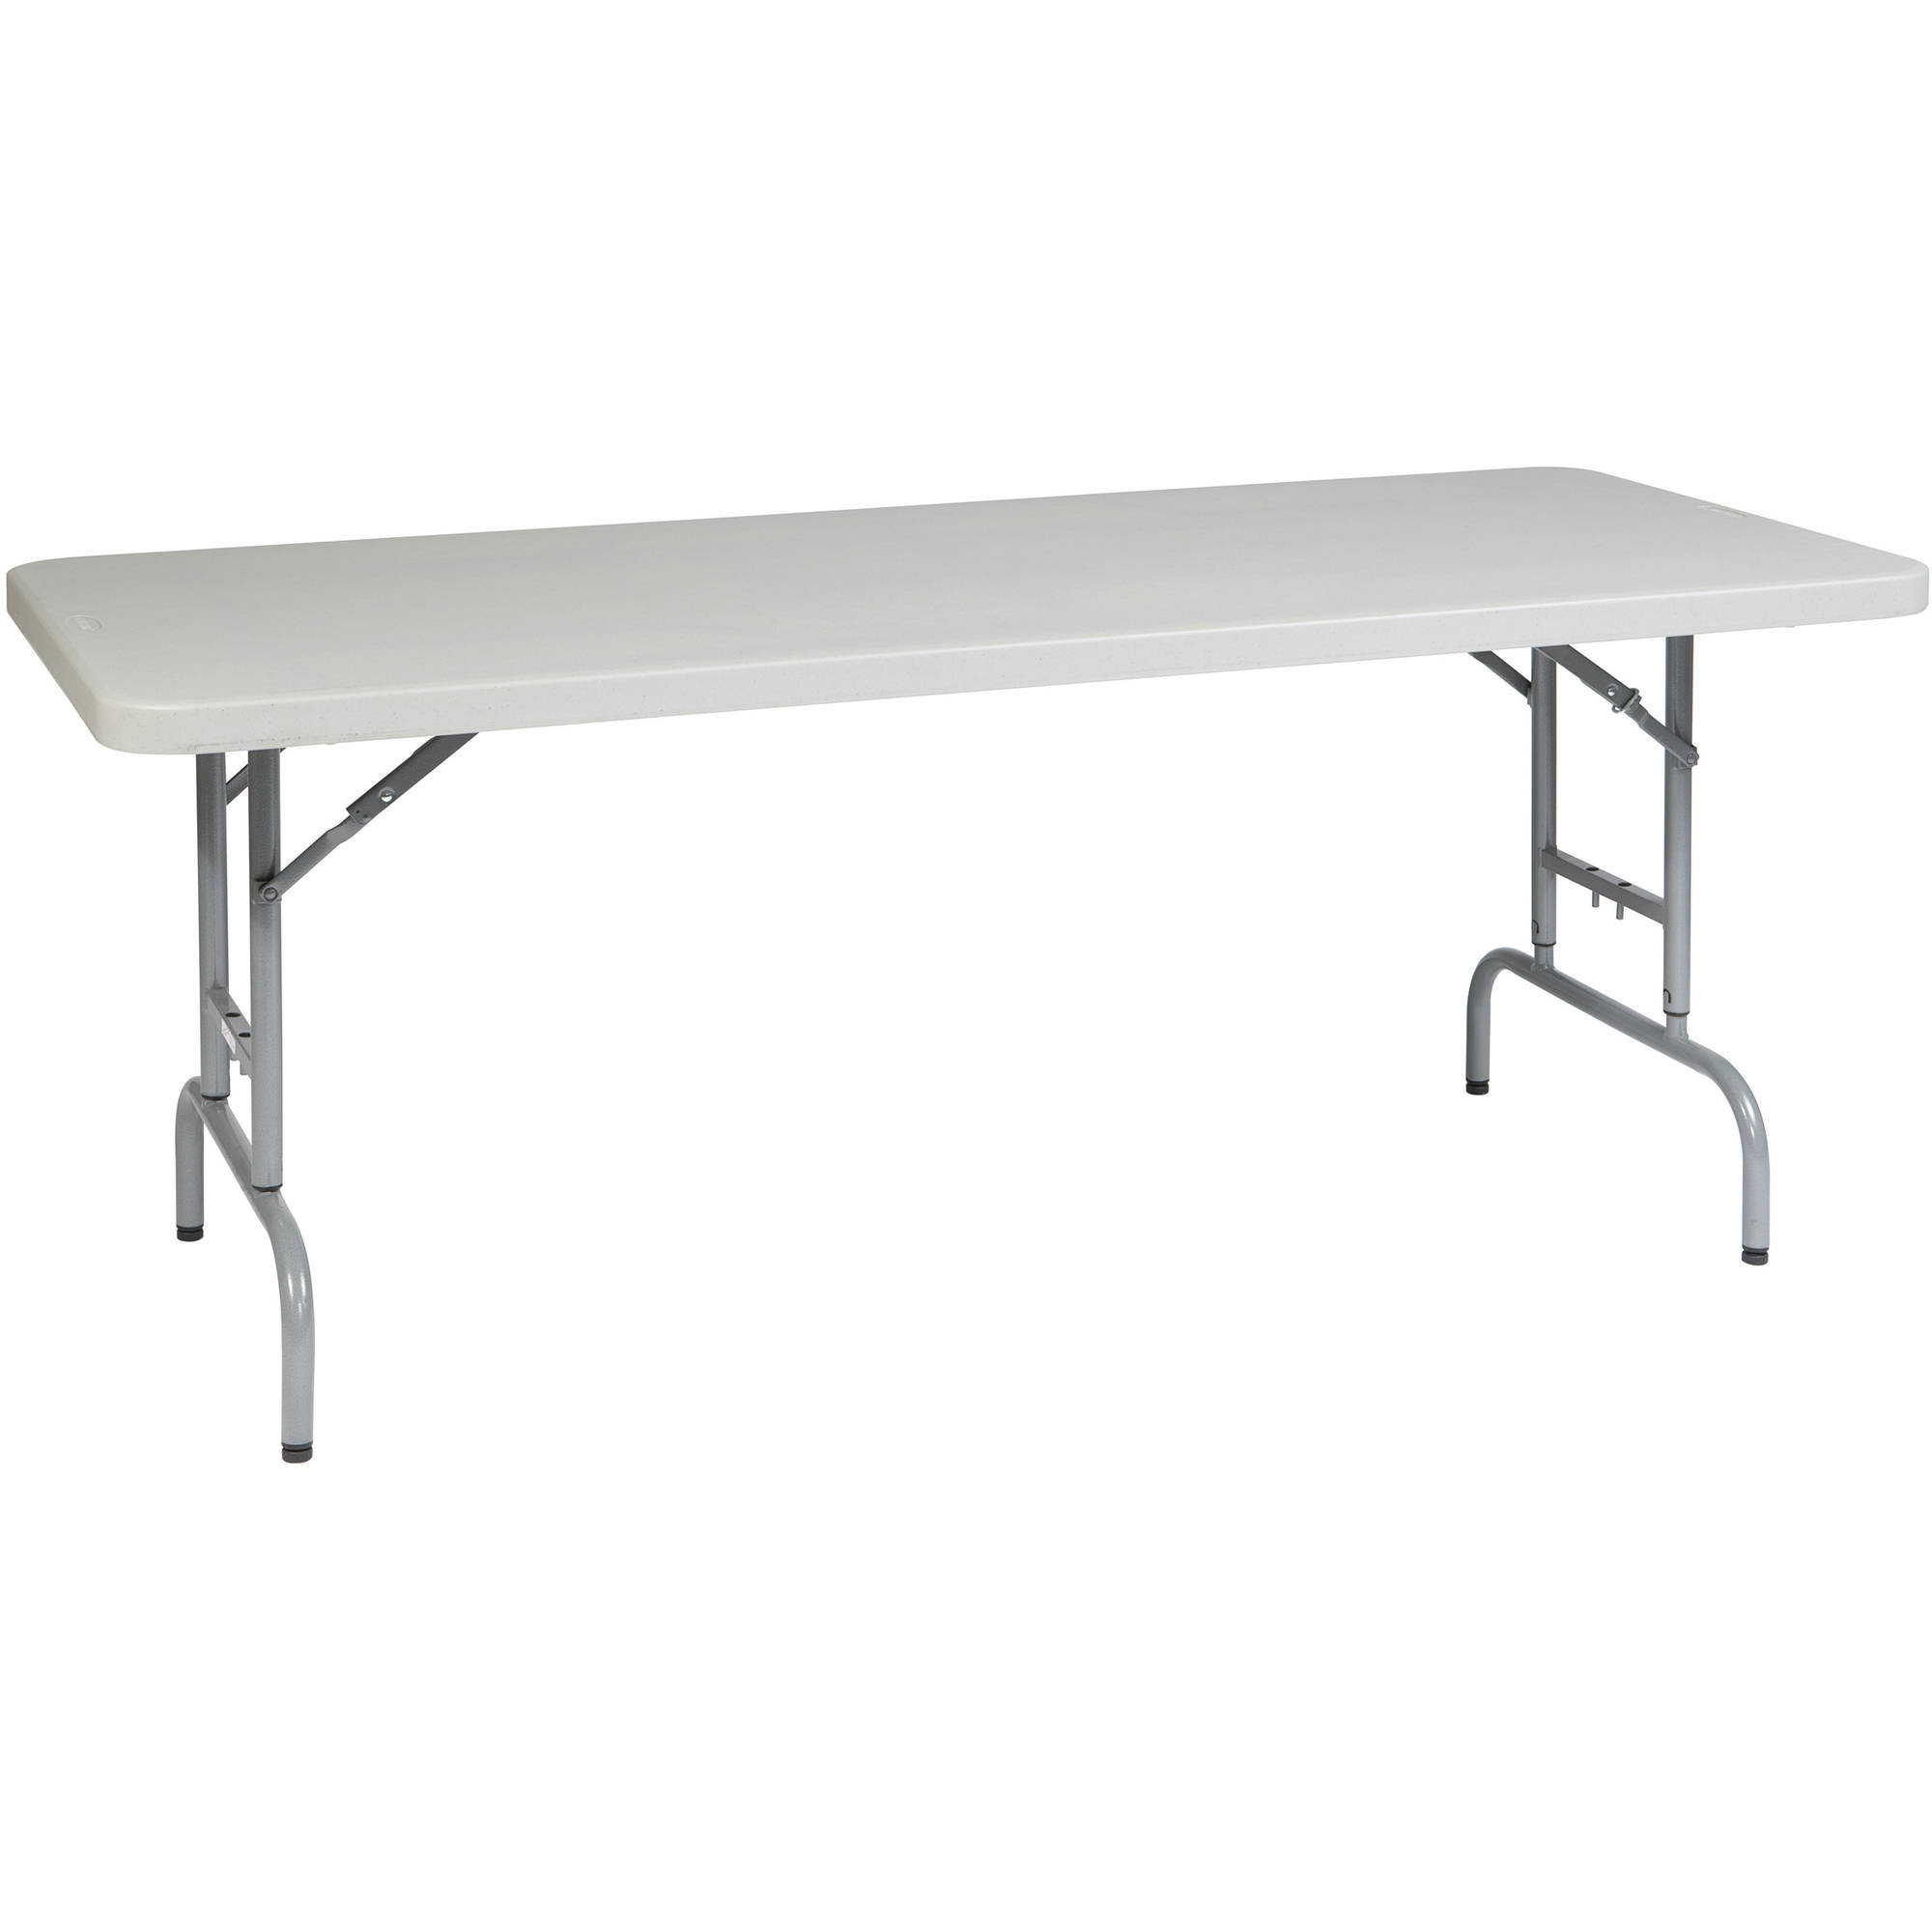 Multi Purpose Table work smart 6' height adjustable resin multi-purpose table, light